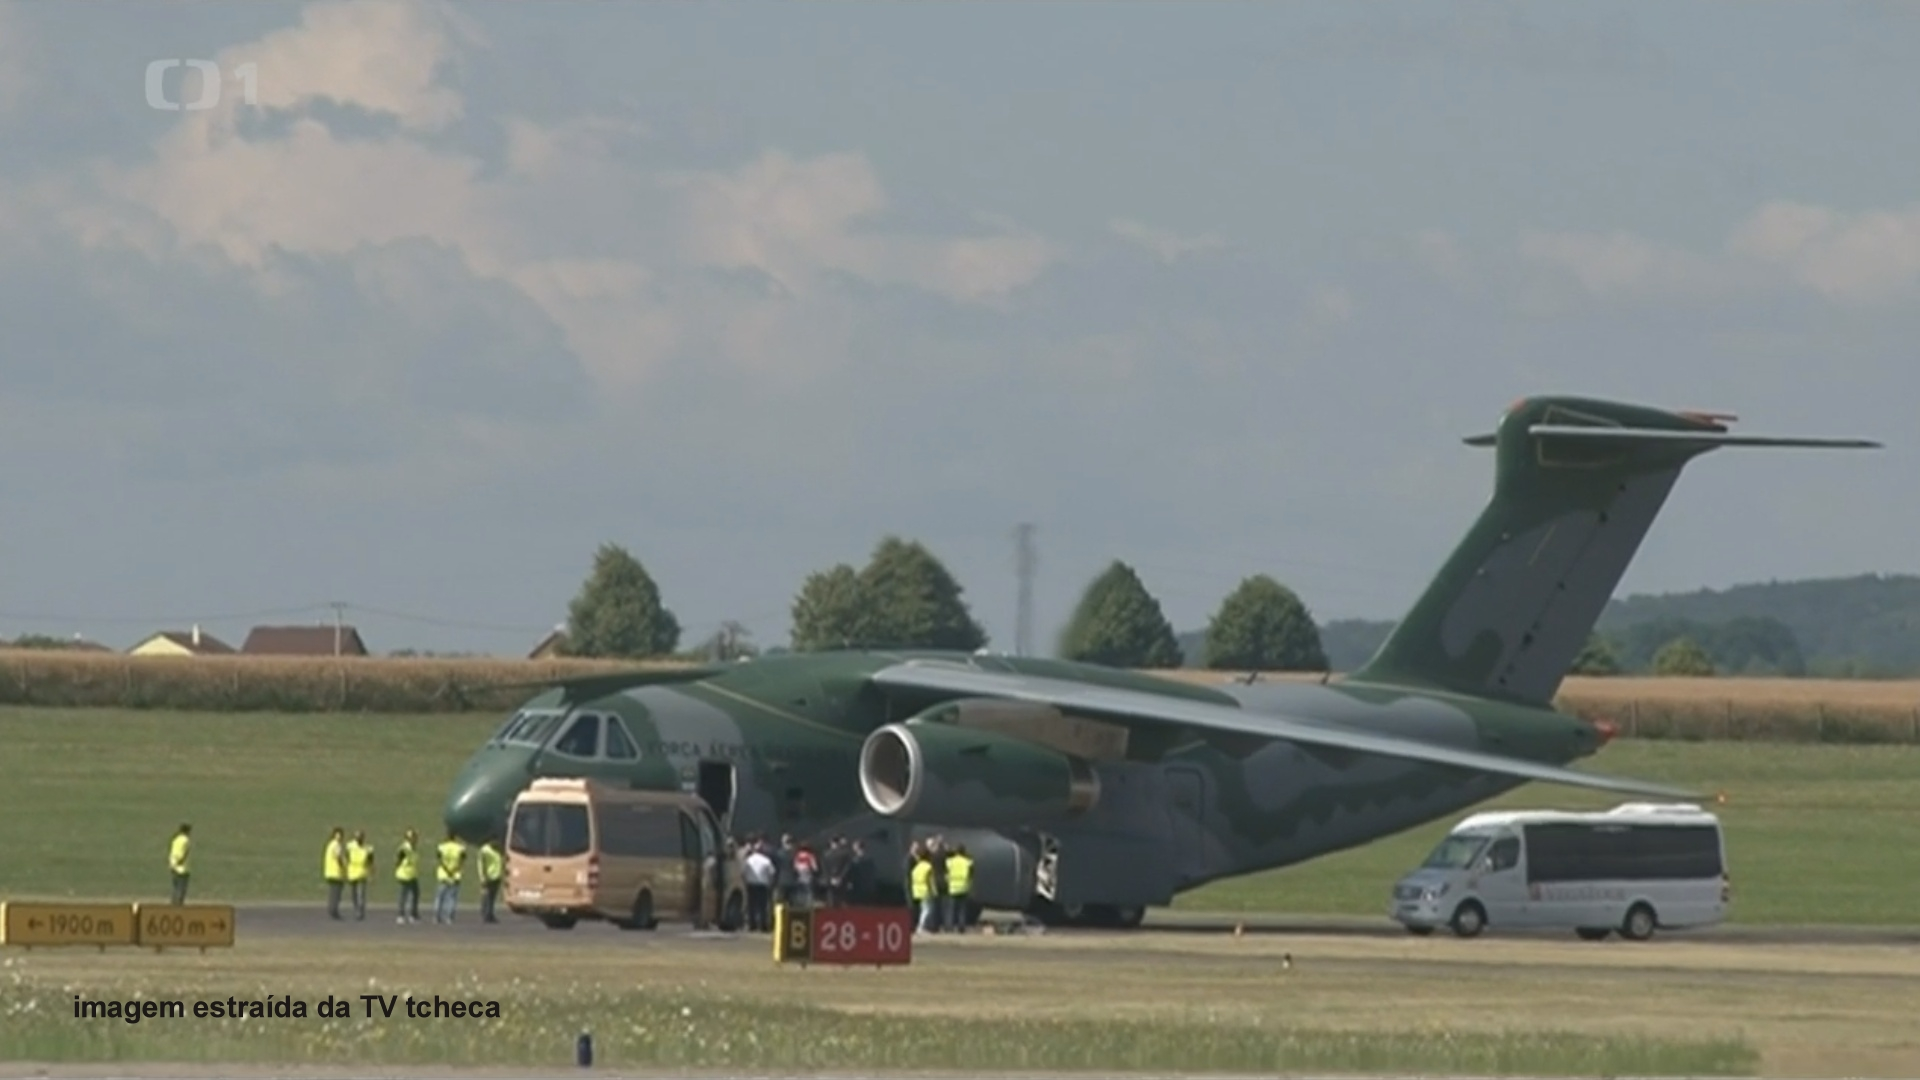 KC-390 foto TV tcheca01